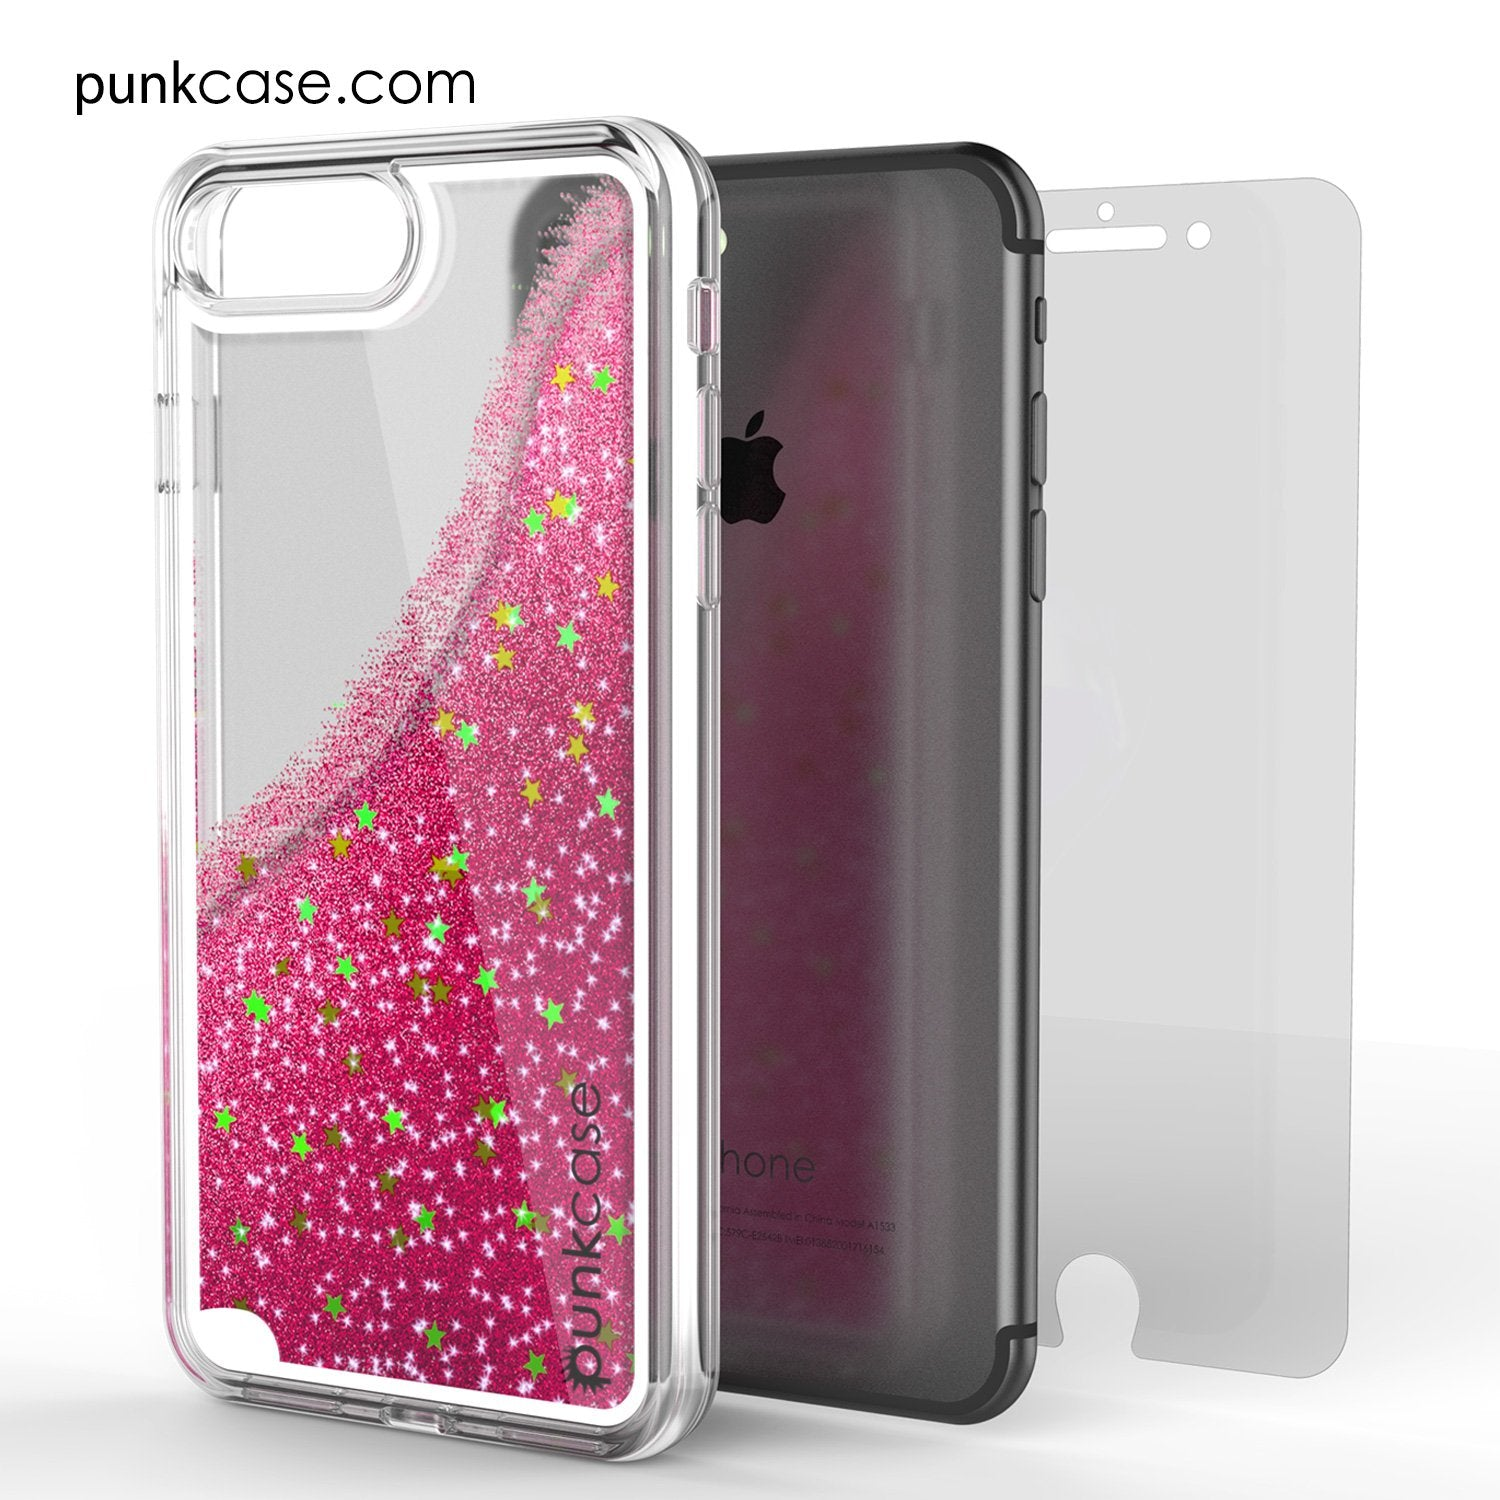 iPhone 7+Plus Case, PunkCase LIQUID Pink Series, Protective Dual Layer Floating Glitter Cover - PunkCase NZ